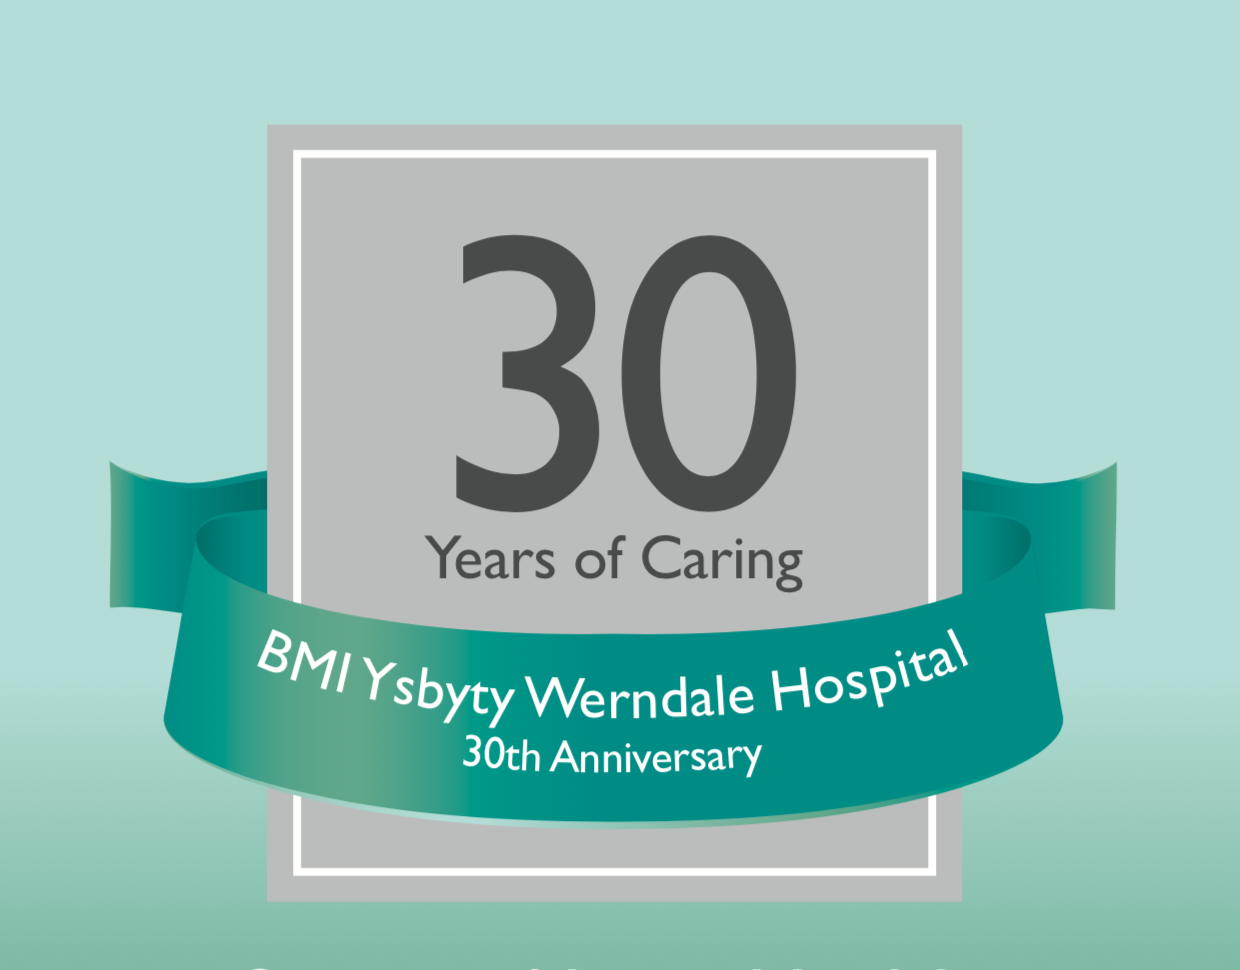 Happy 30th Anniversary Ysbyty BMI Wendale Hospital!